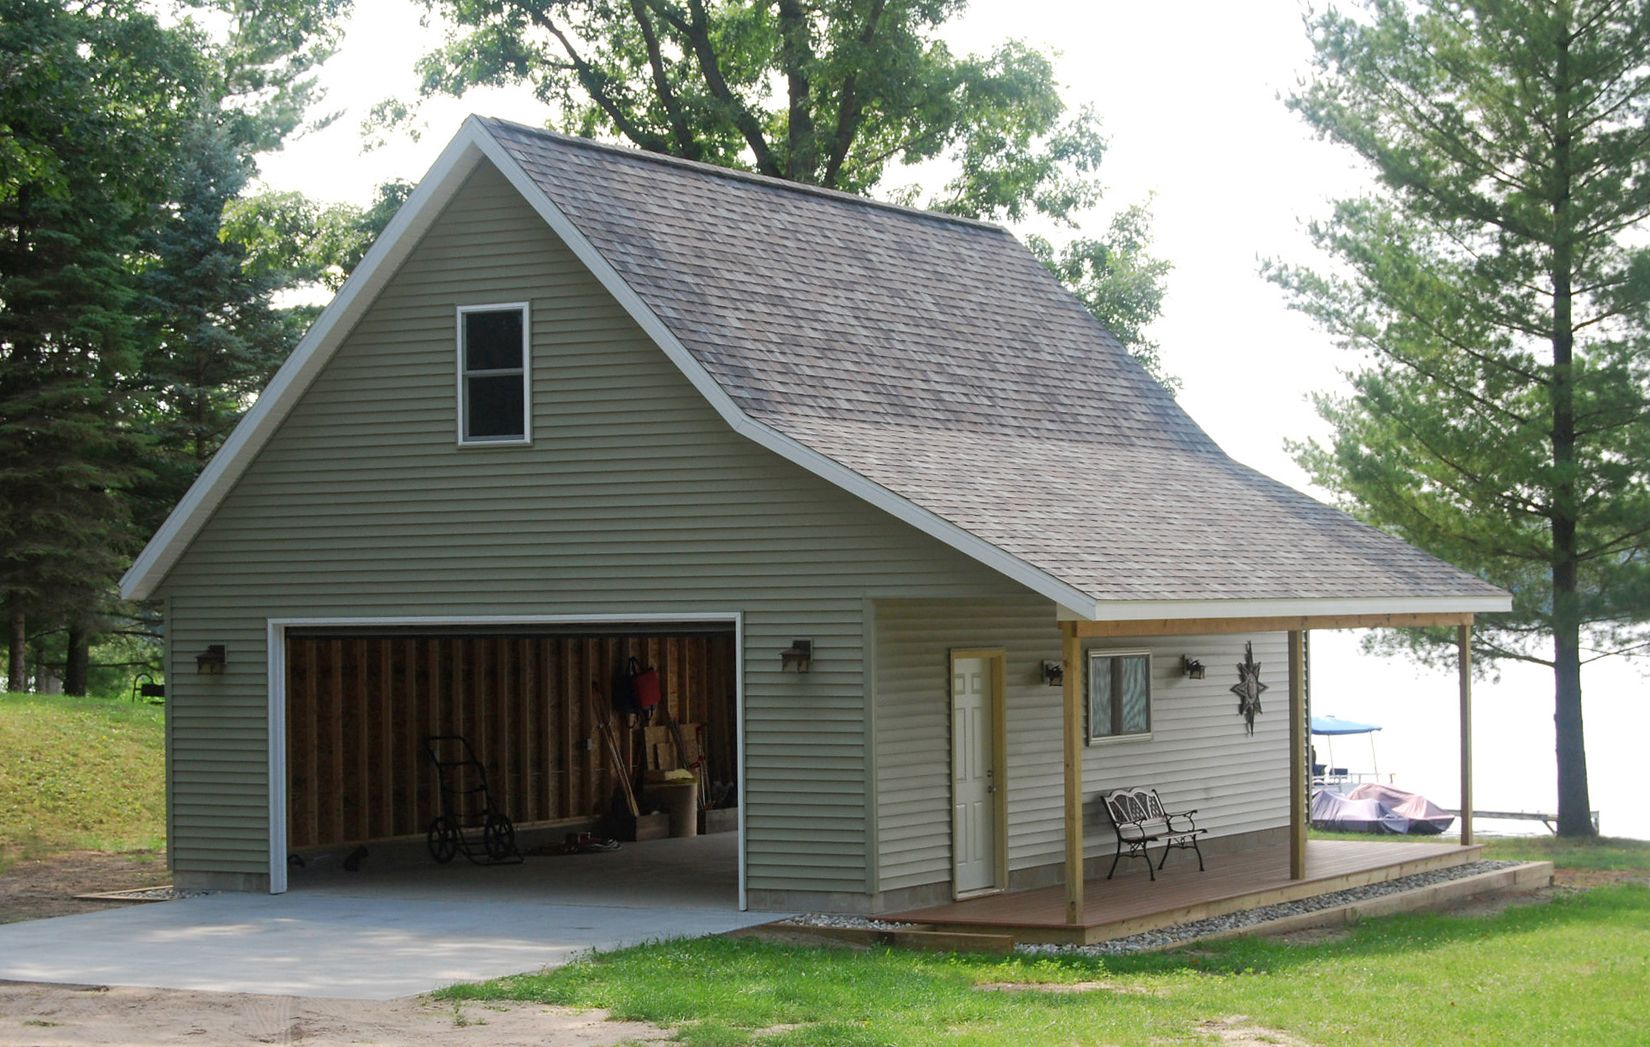 Pole barn garage plans welcome to jb custom homes where for Farm shed ideas